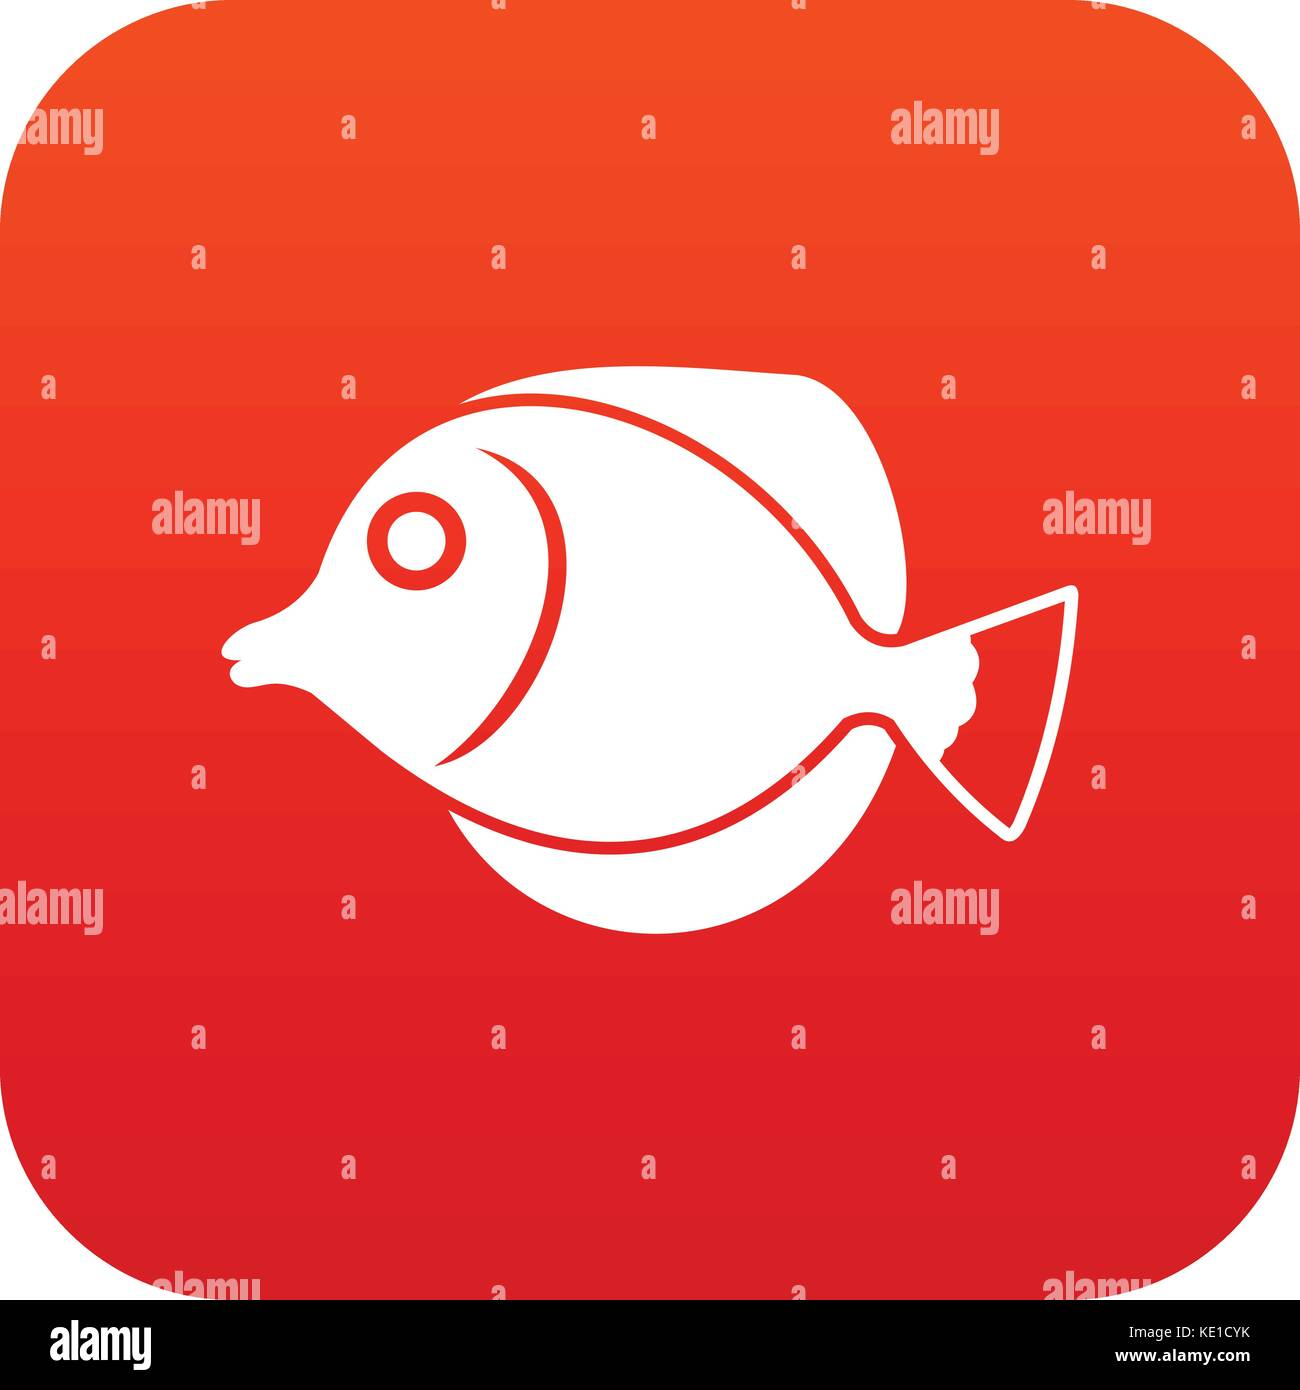 Tang Fish Stock Vector Images - Alamy